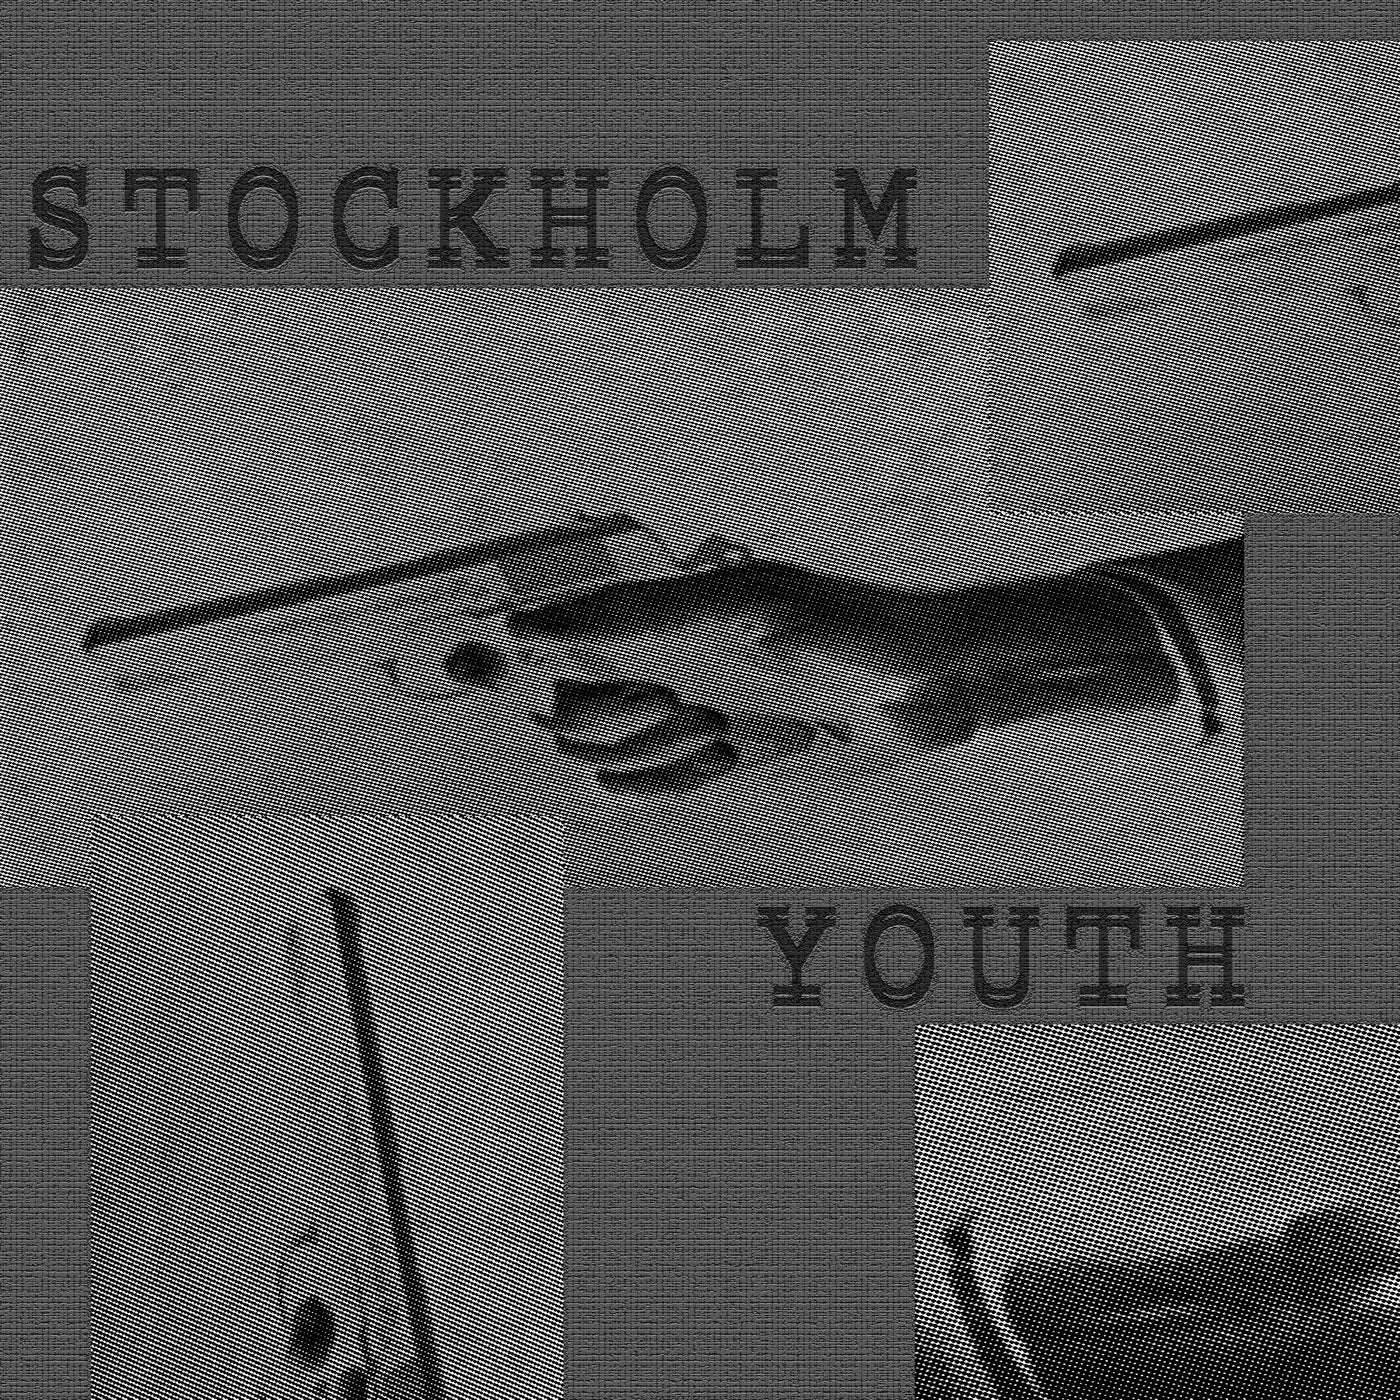 Stockholm Youth - Stockholm Youth (2021)